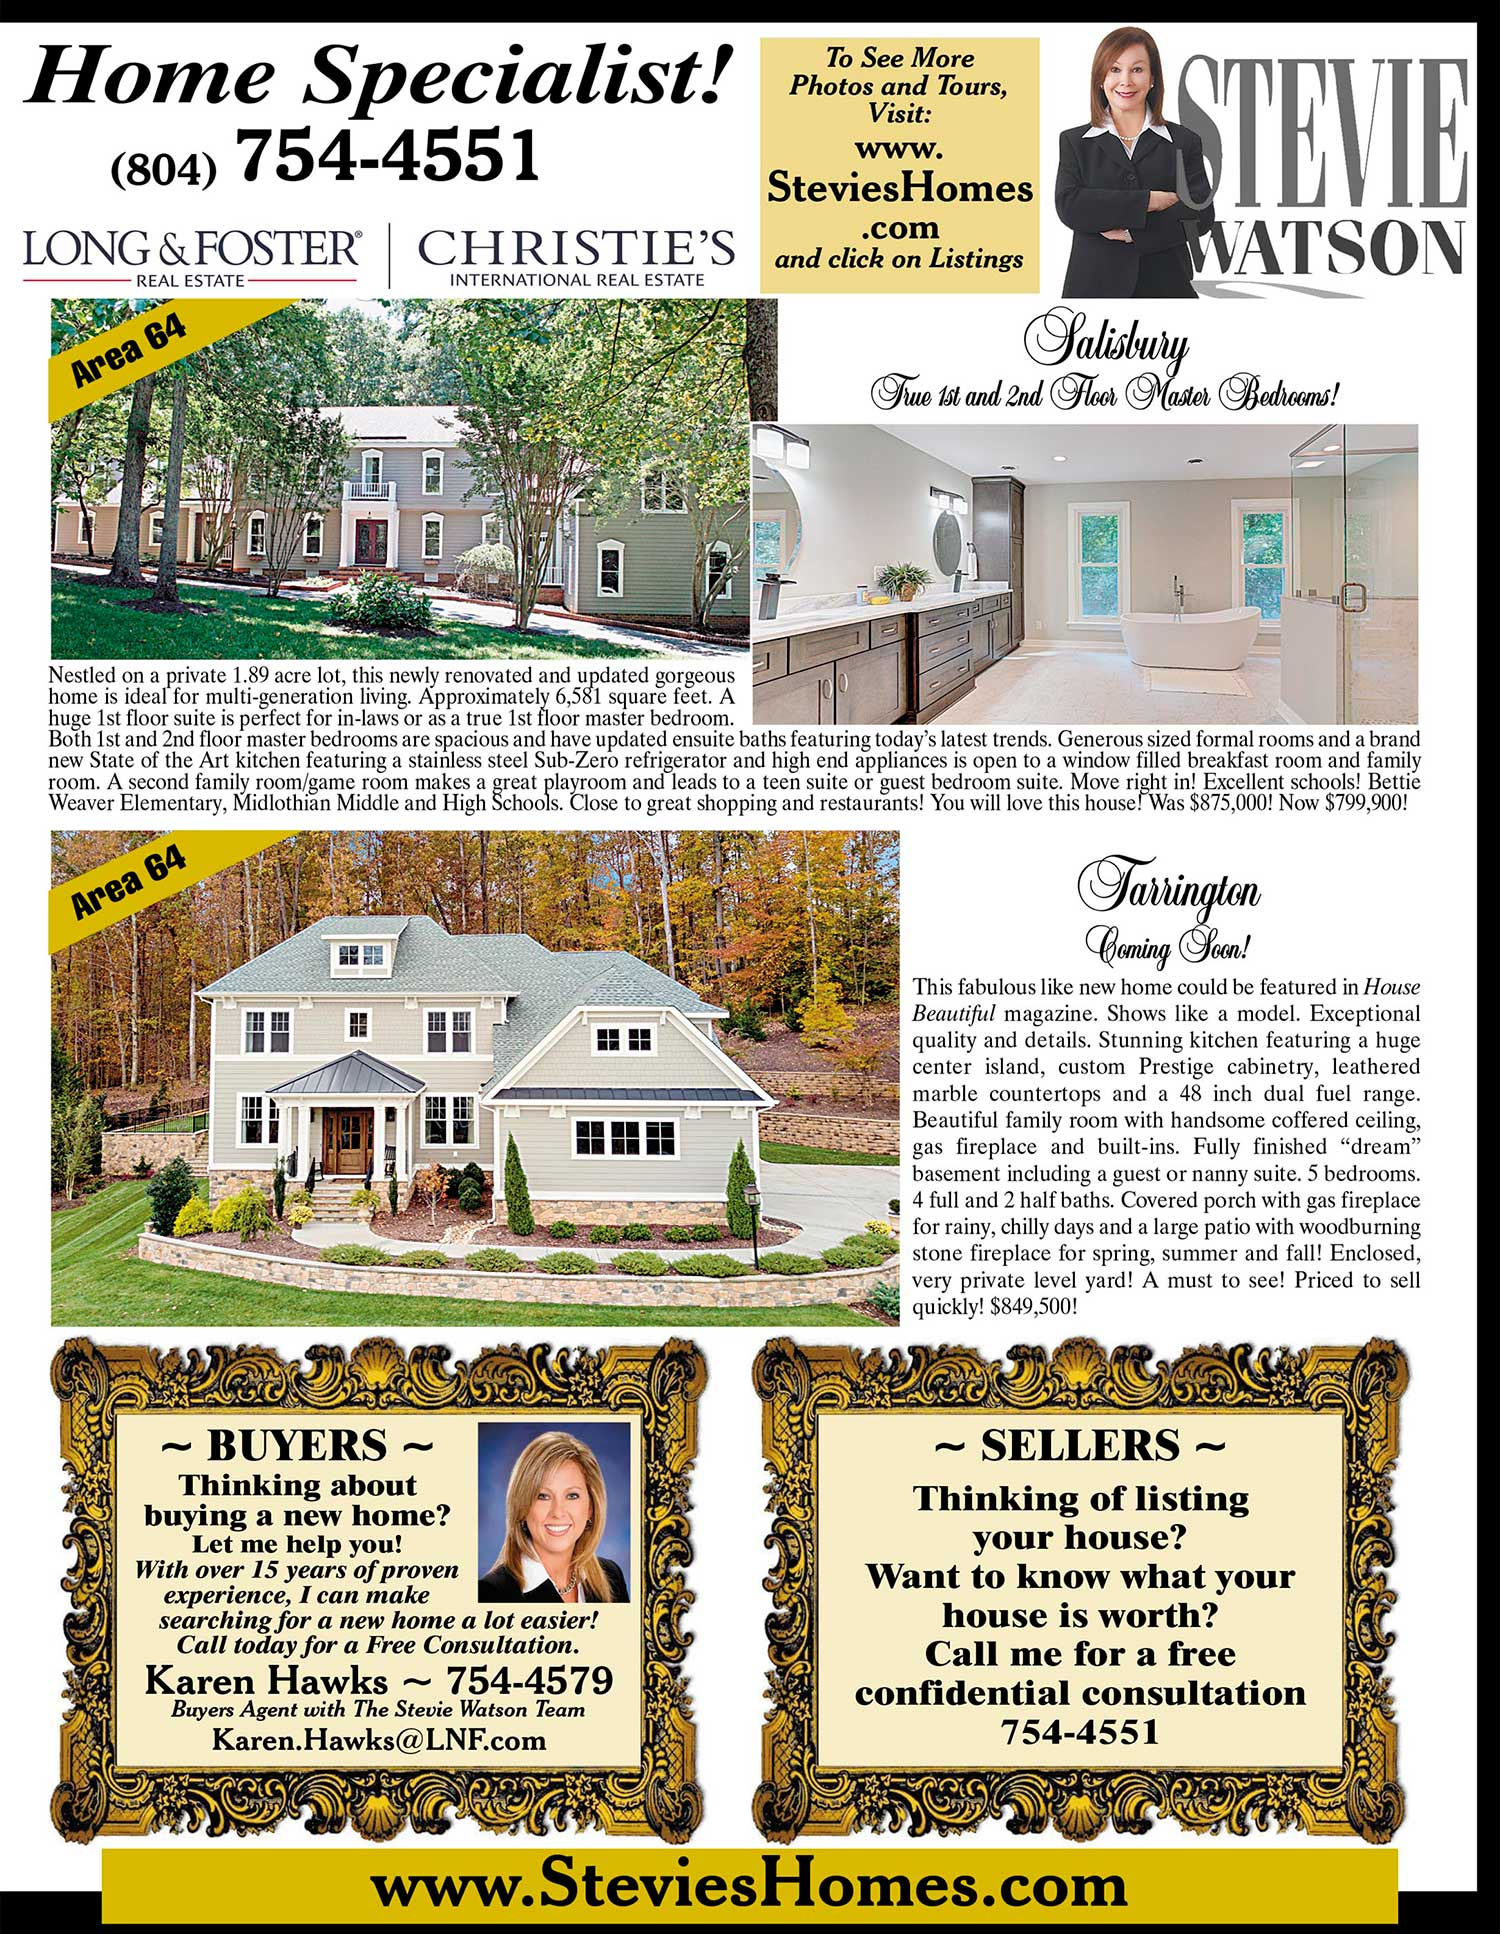 Estates and Homes Magazine